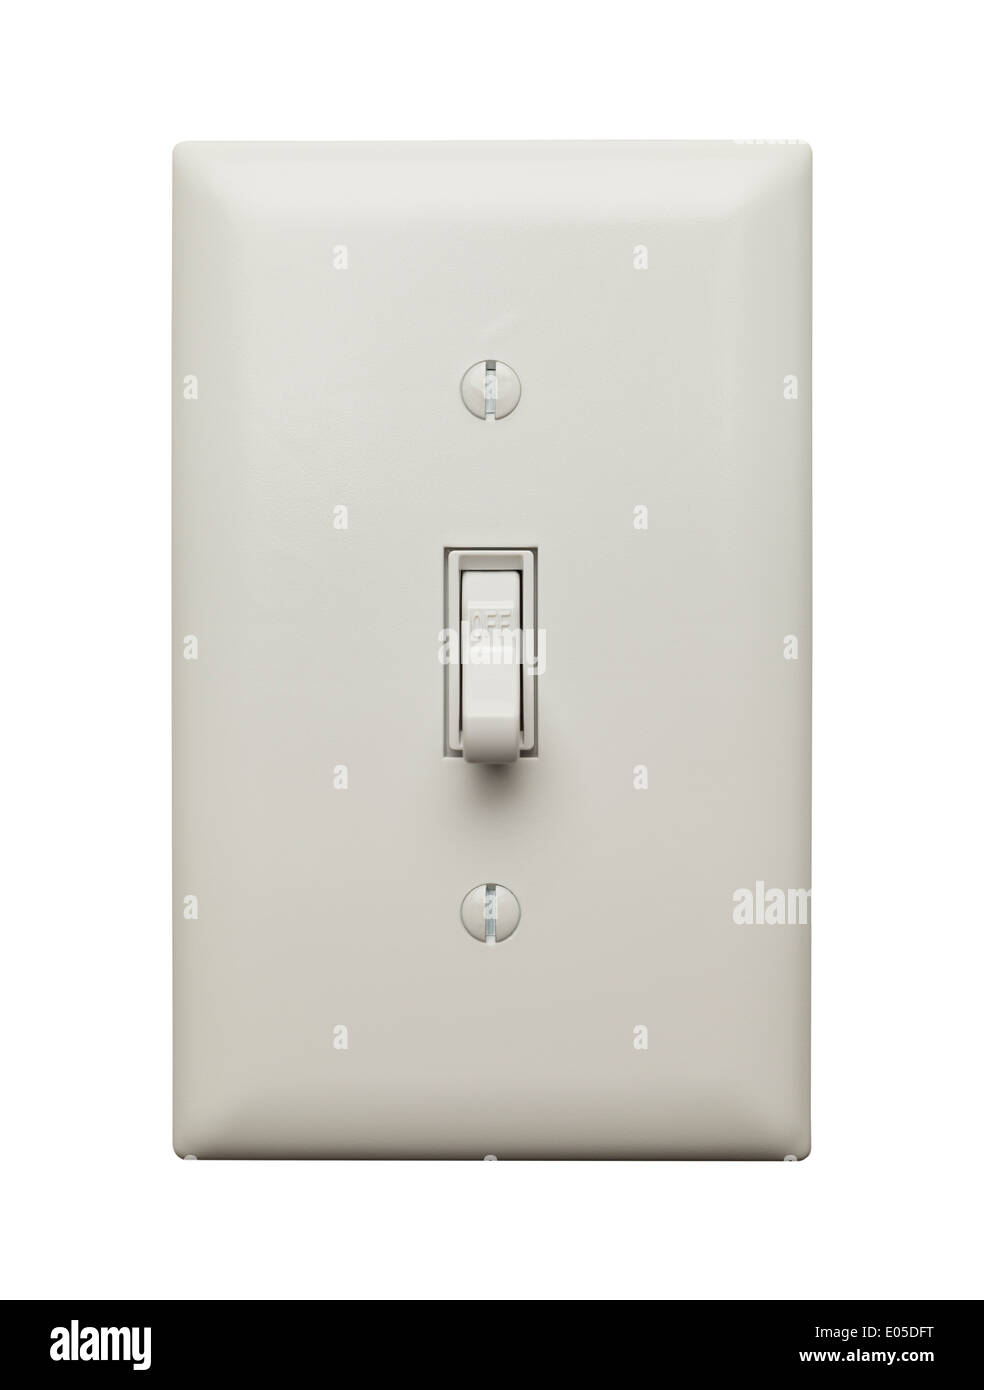 Switch Off Light Stock Photos & Switch Off Light Stock Images - Alamy